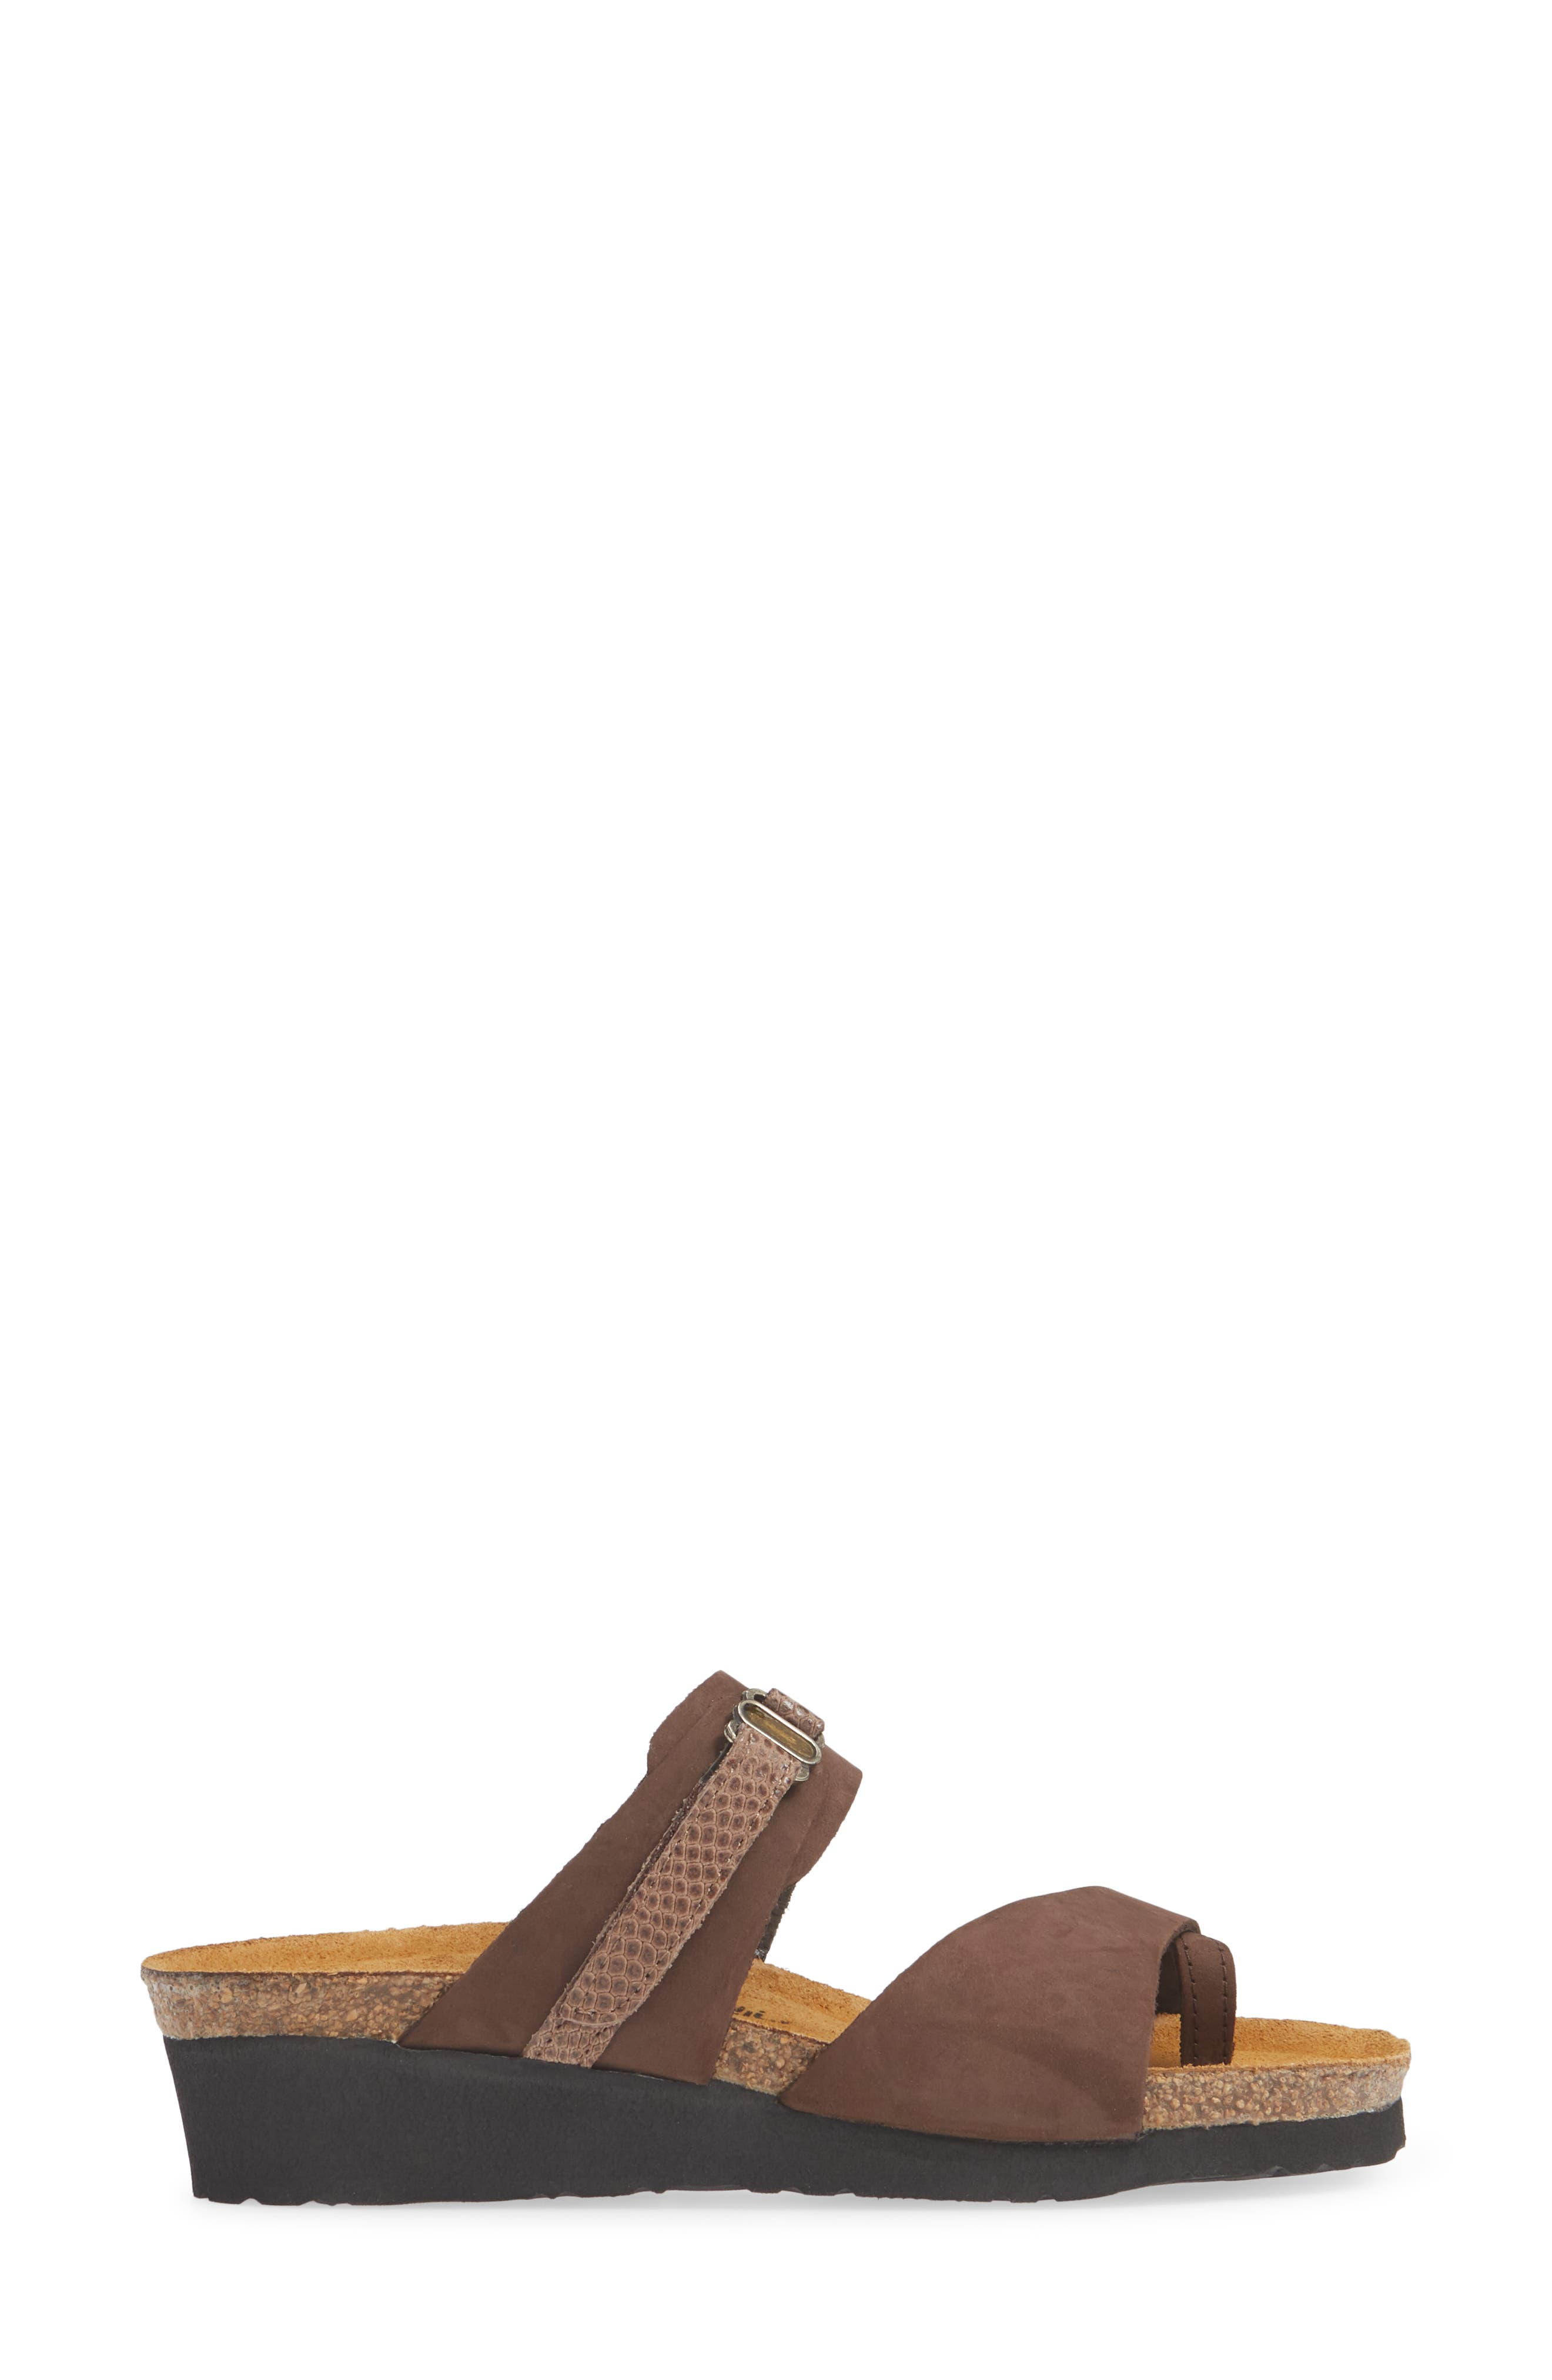 NAOT, Jessica Sandal, Alternate thumbnail 3, color, COFFEE BEAN NUBUCK LEATHER